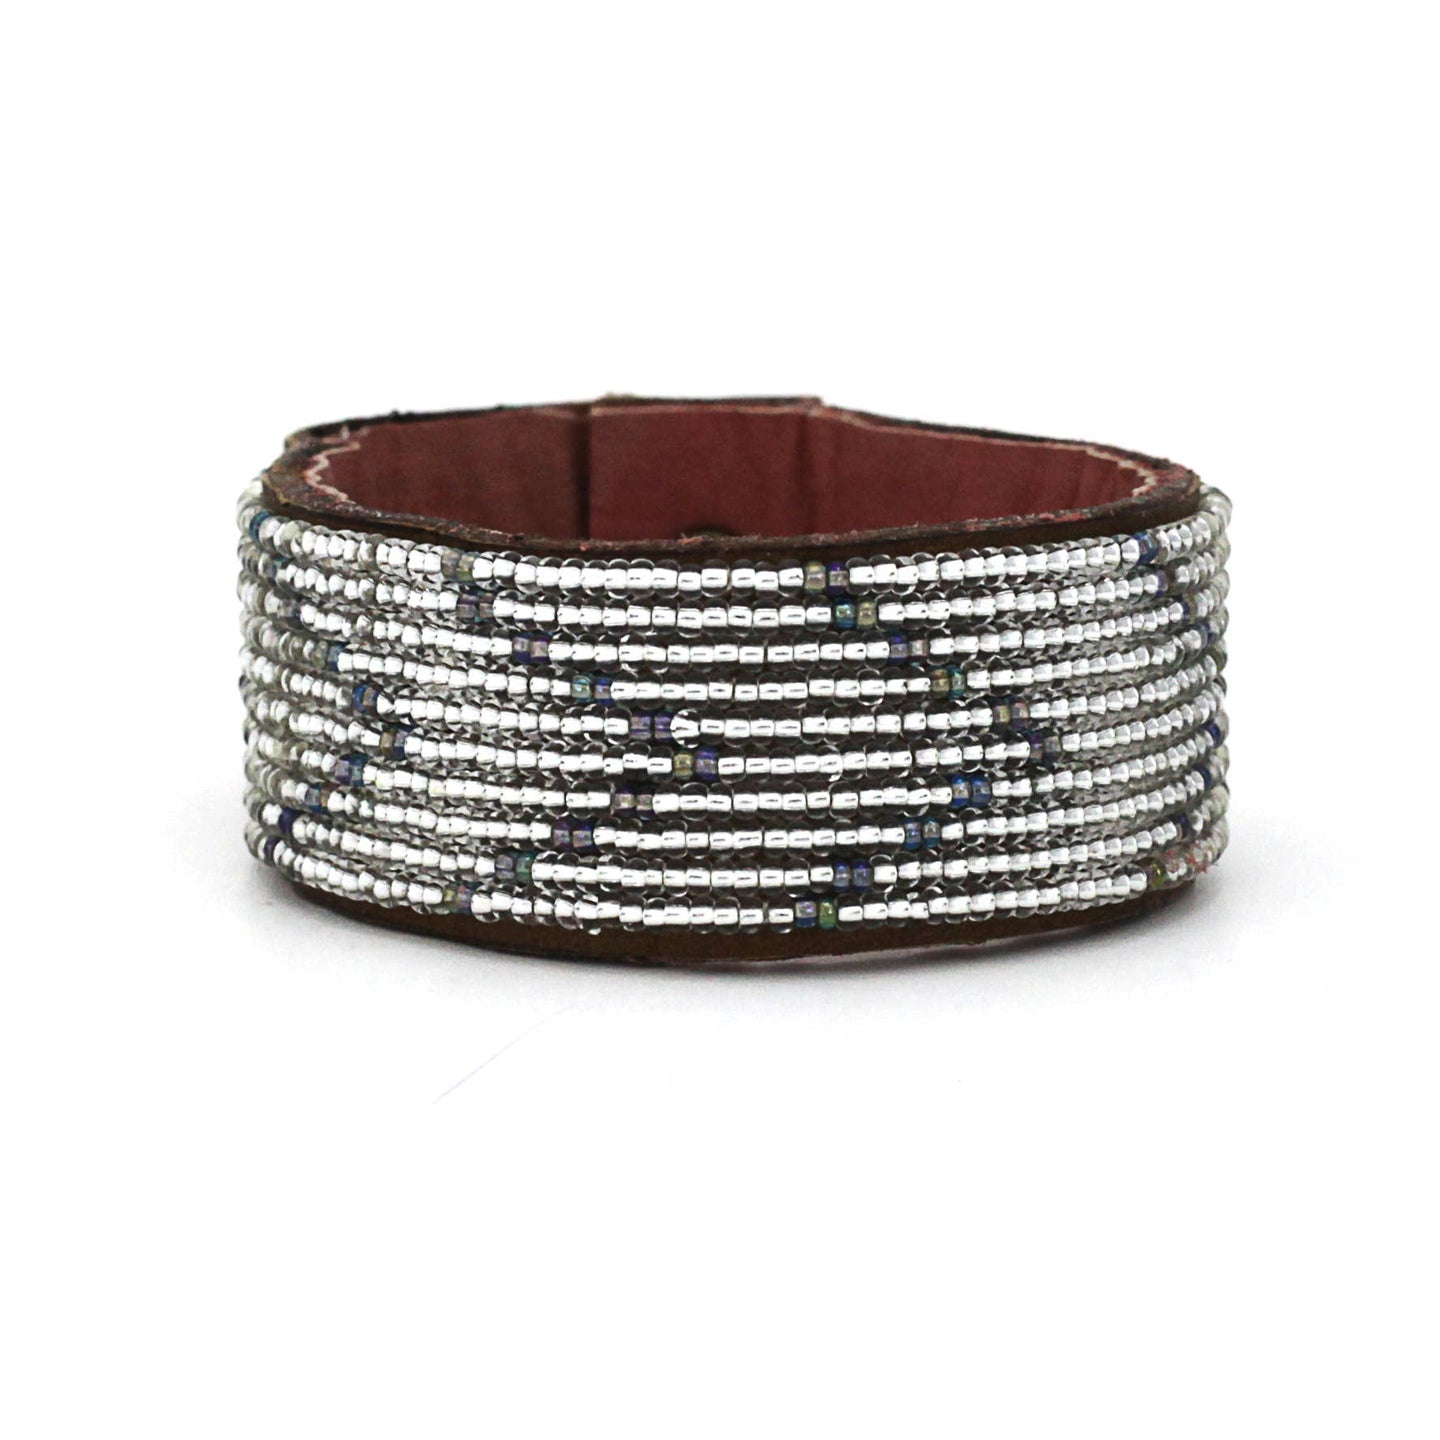 Swahili Coast - Medium Silver/Rainbow Chevron Leather Cuff - Limited Edition